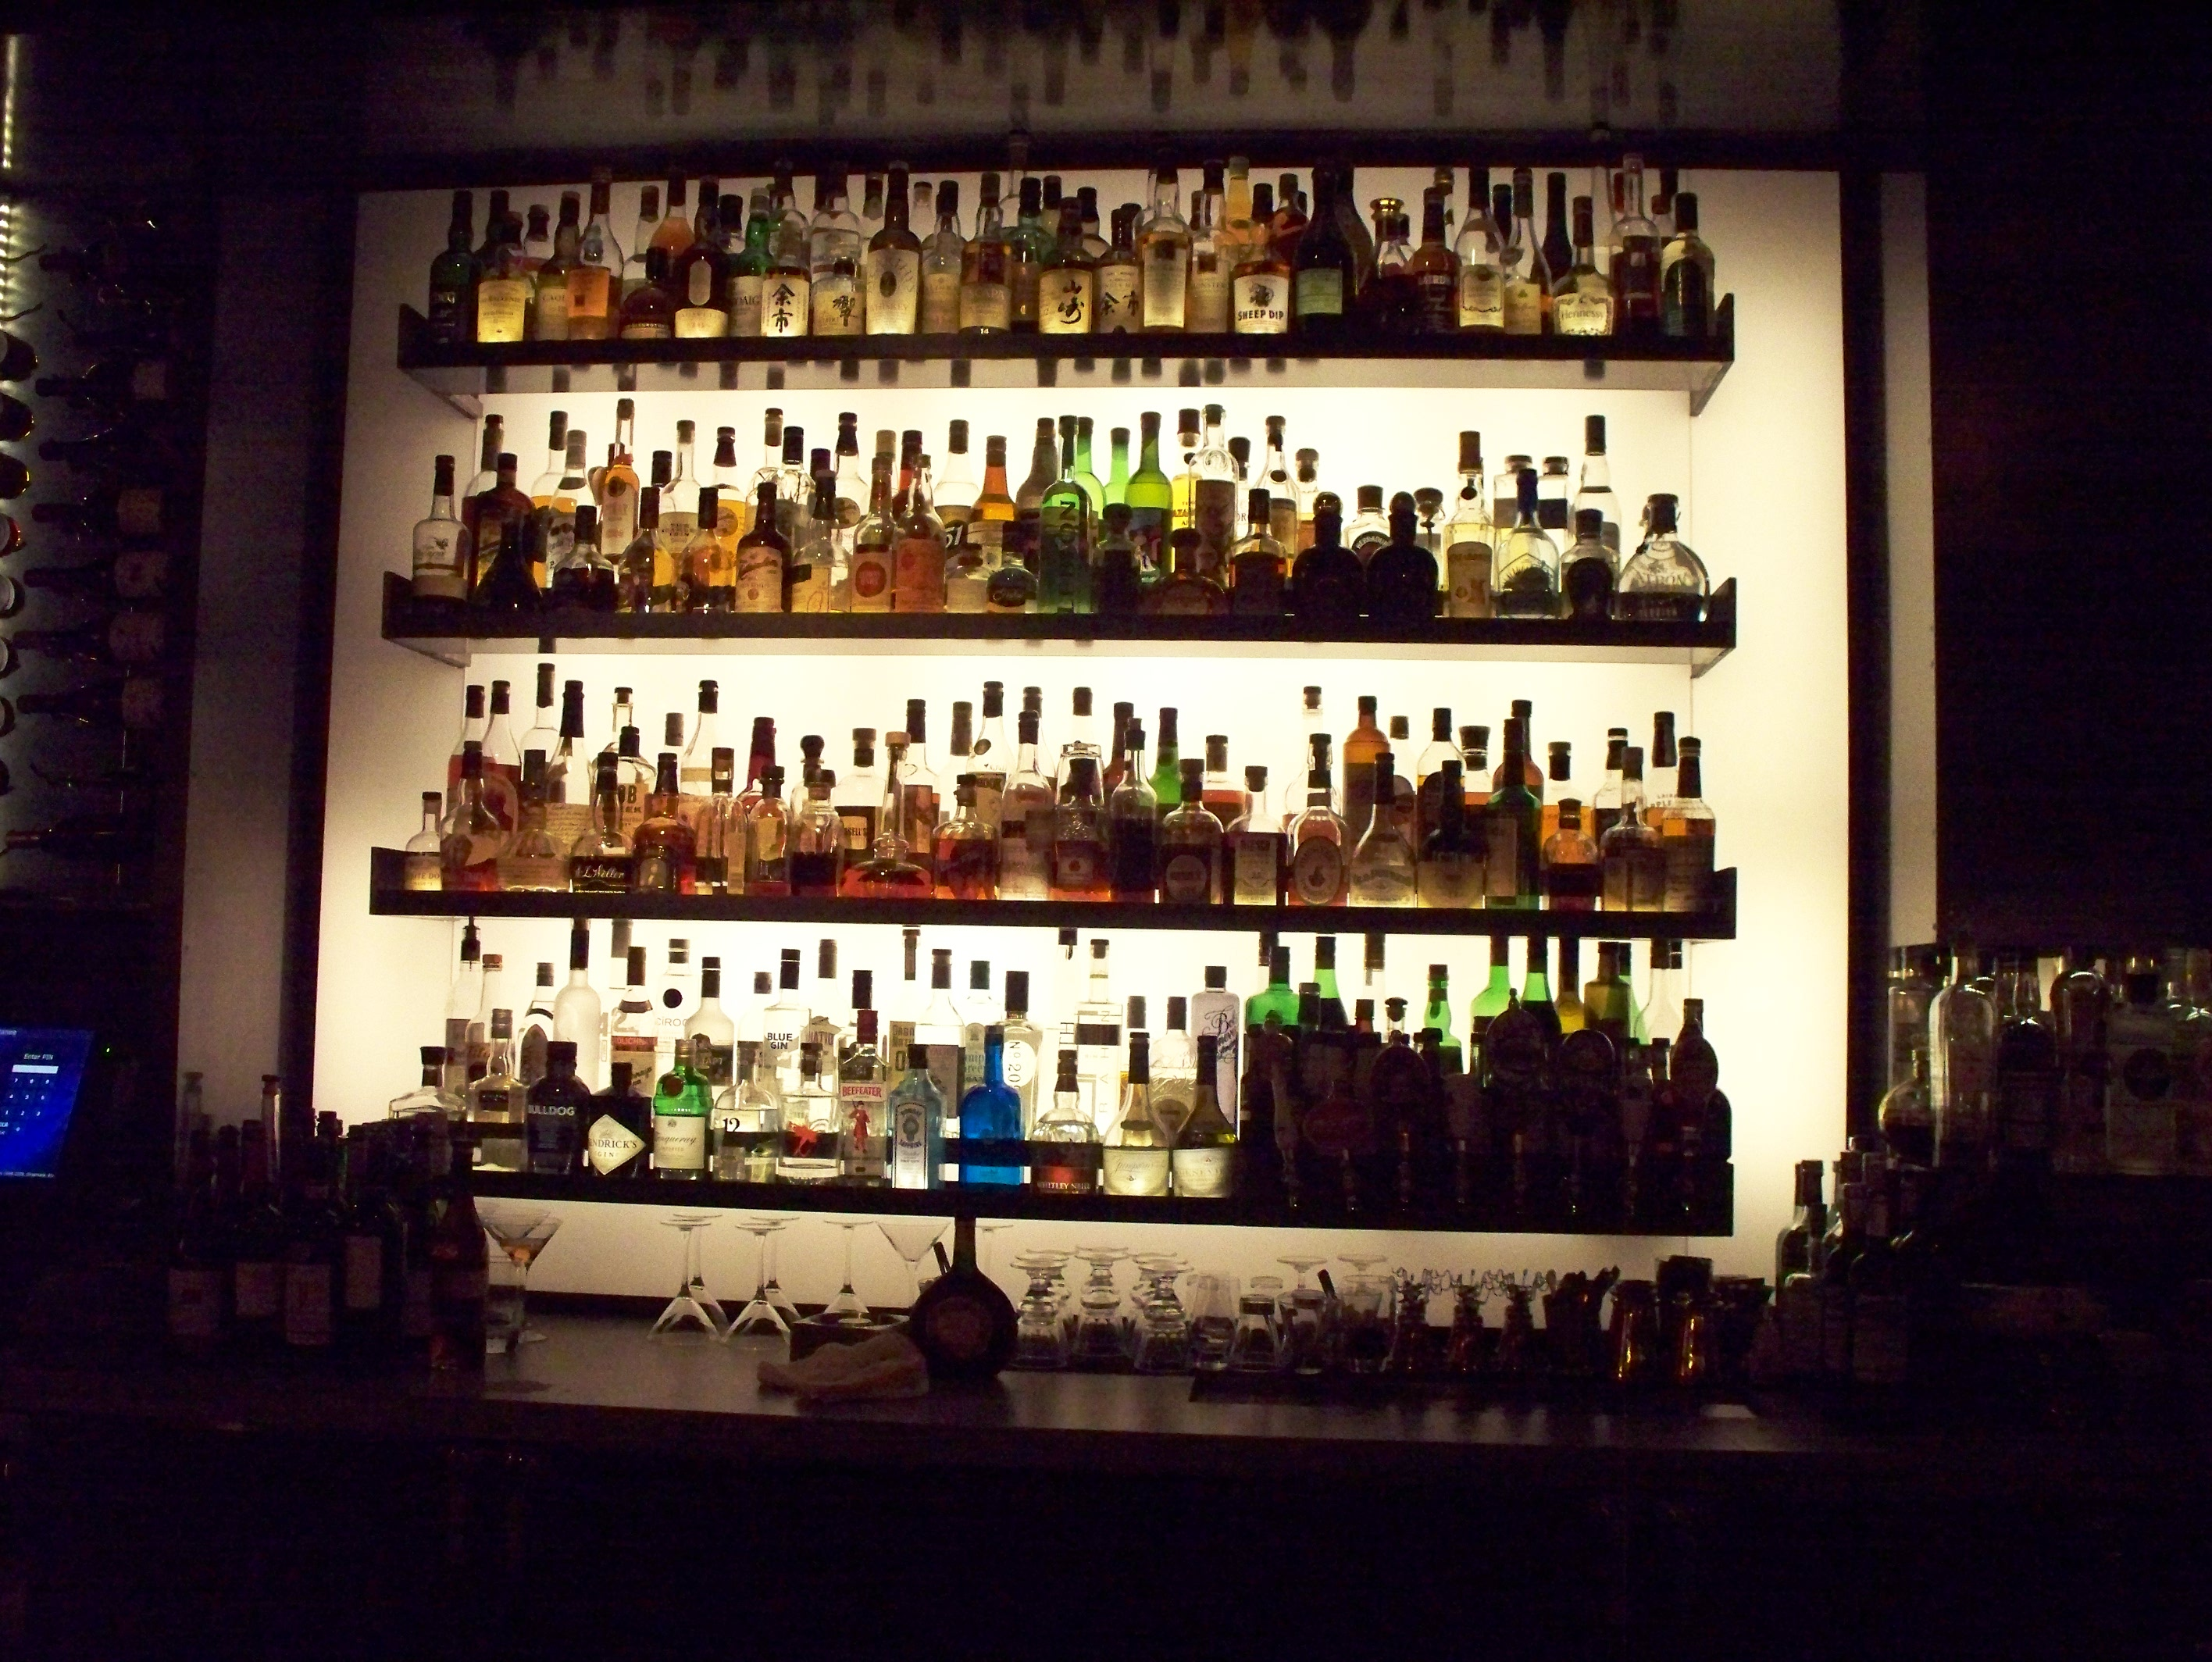 File Liquor Bottles On A Bar Wall Jpg Wikimedia Commons